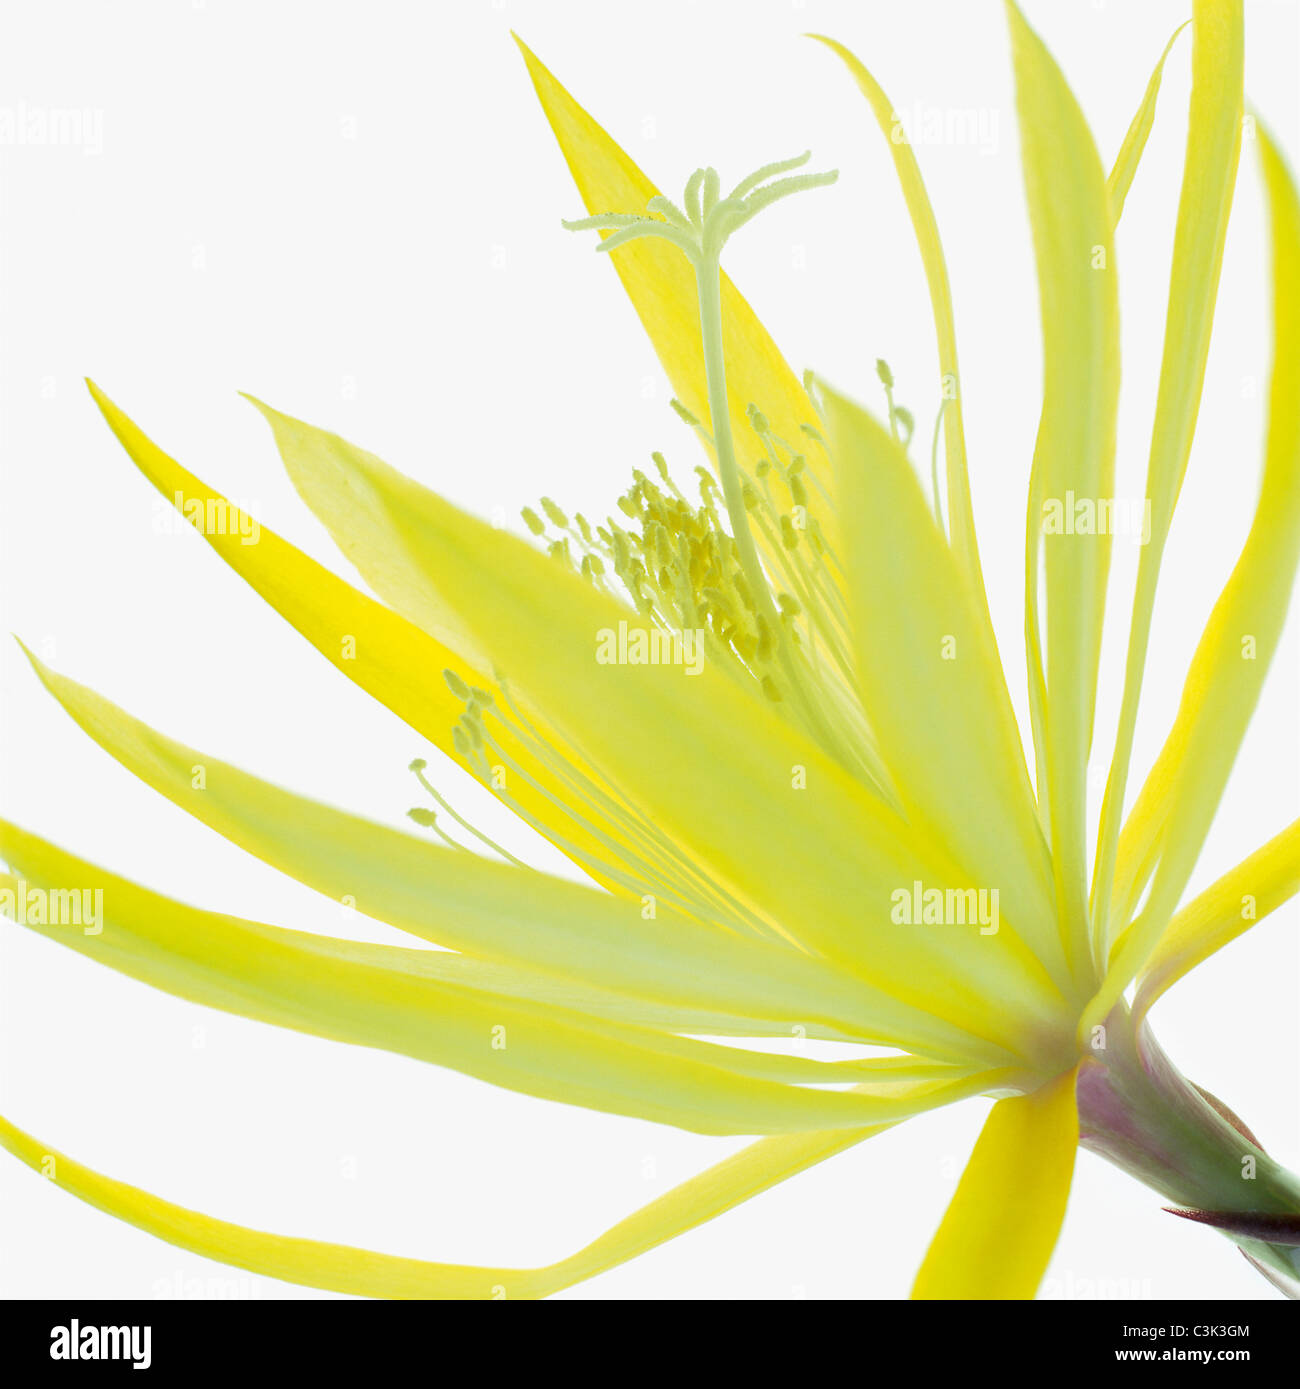 Yellow flower against white background - Stock Image